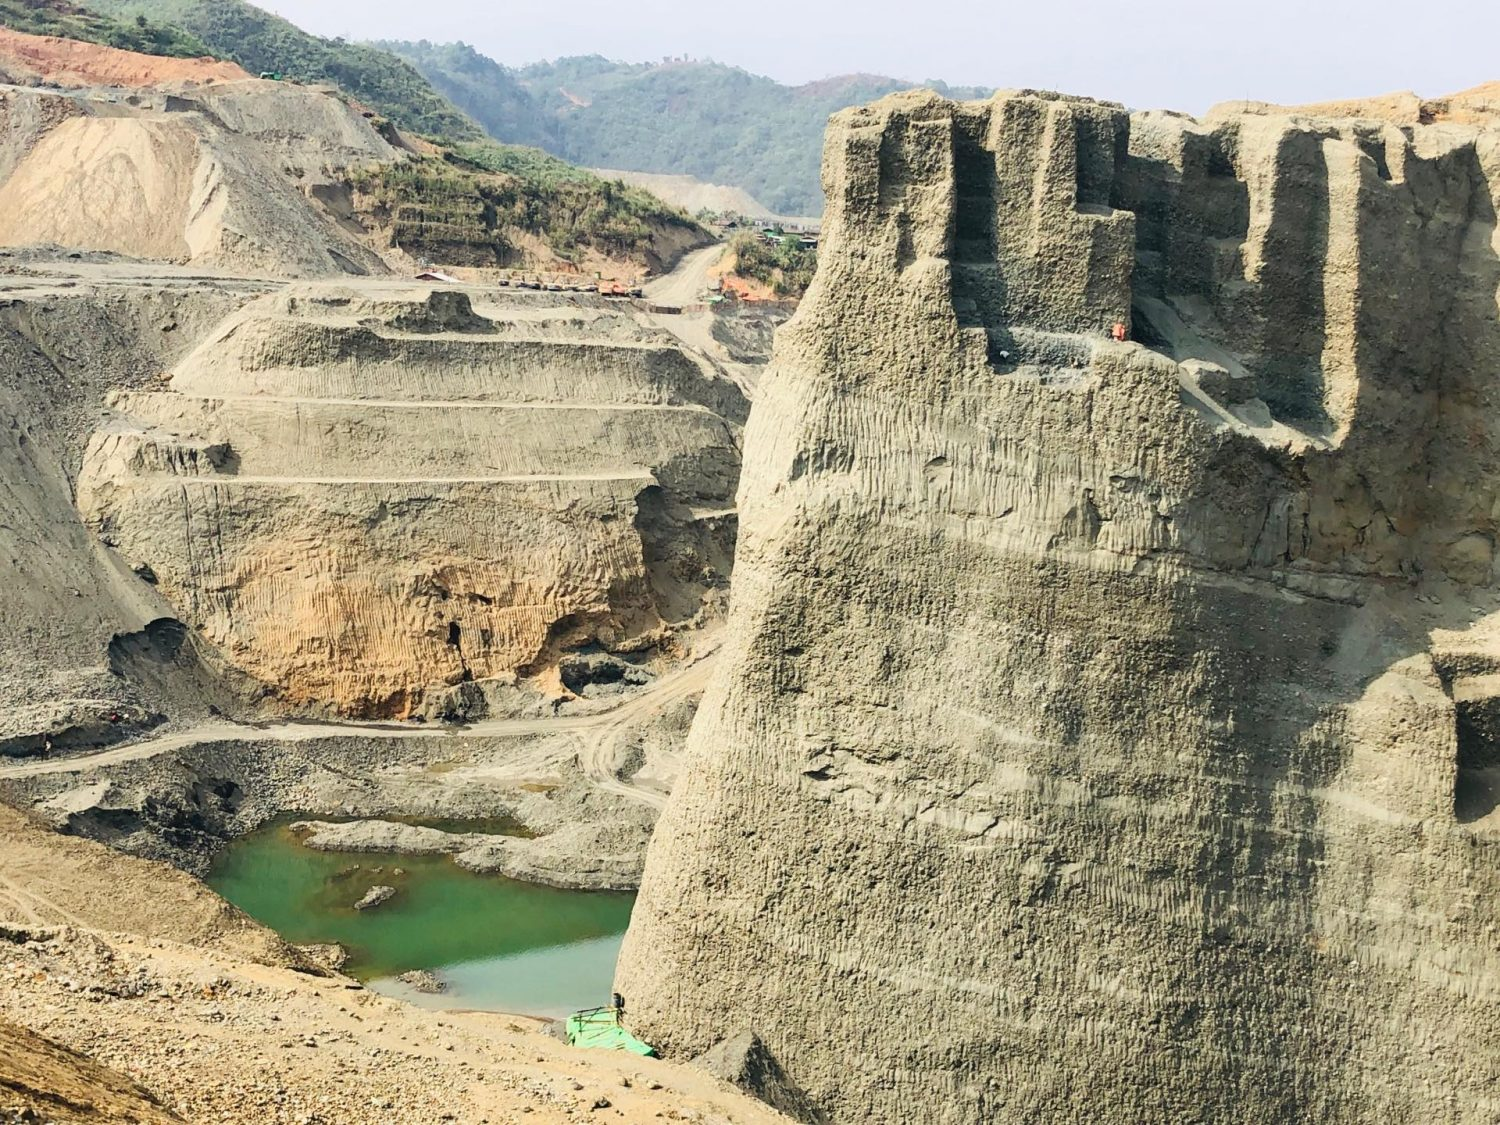 towering cliffs with tiny artisanal miners